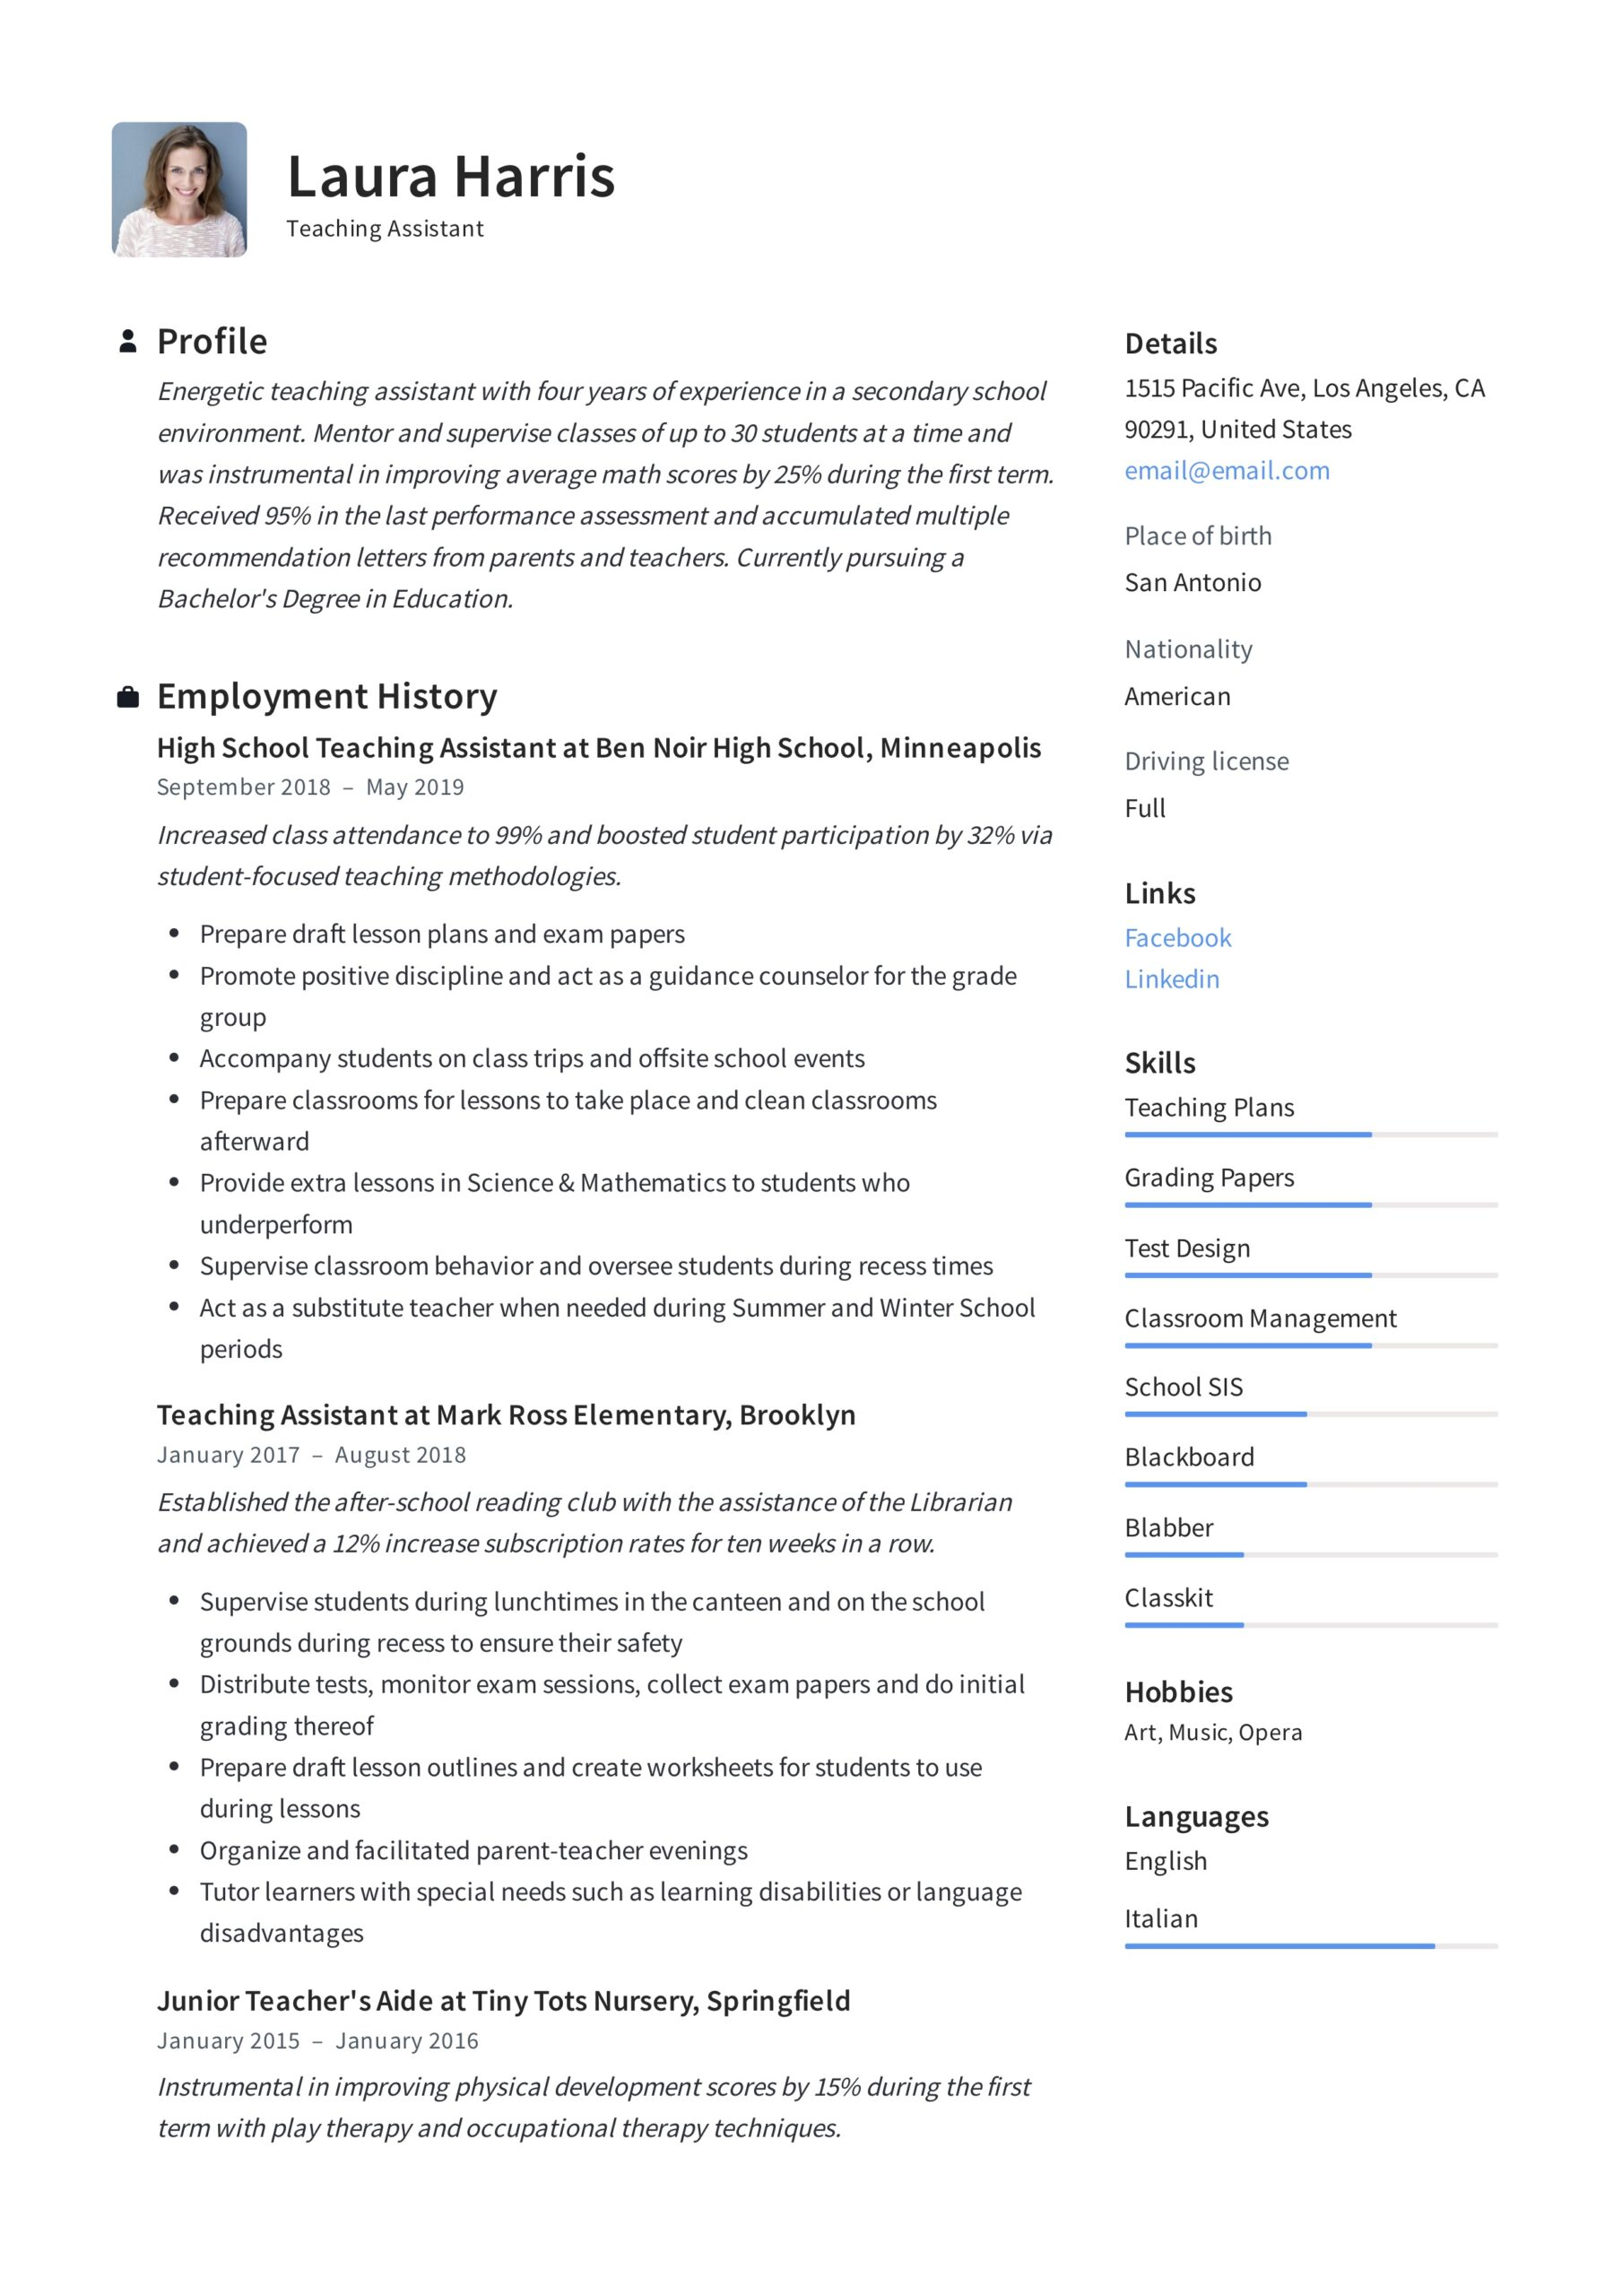 teaching assistant resume writing guide templates pdf responsibilities template file Resume Teaching Assistant Responsibilities Resume